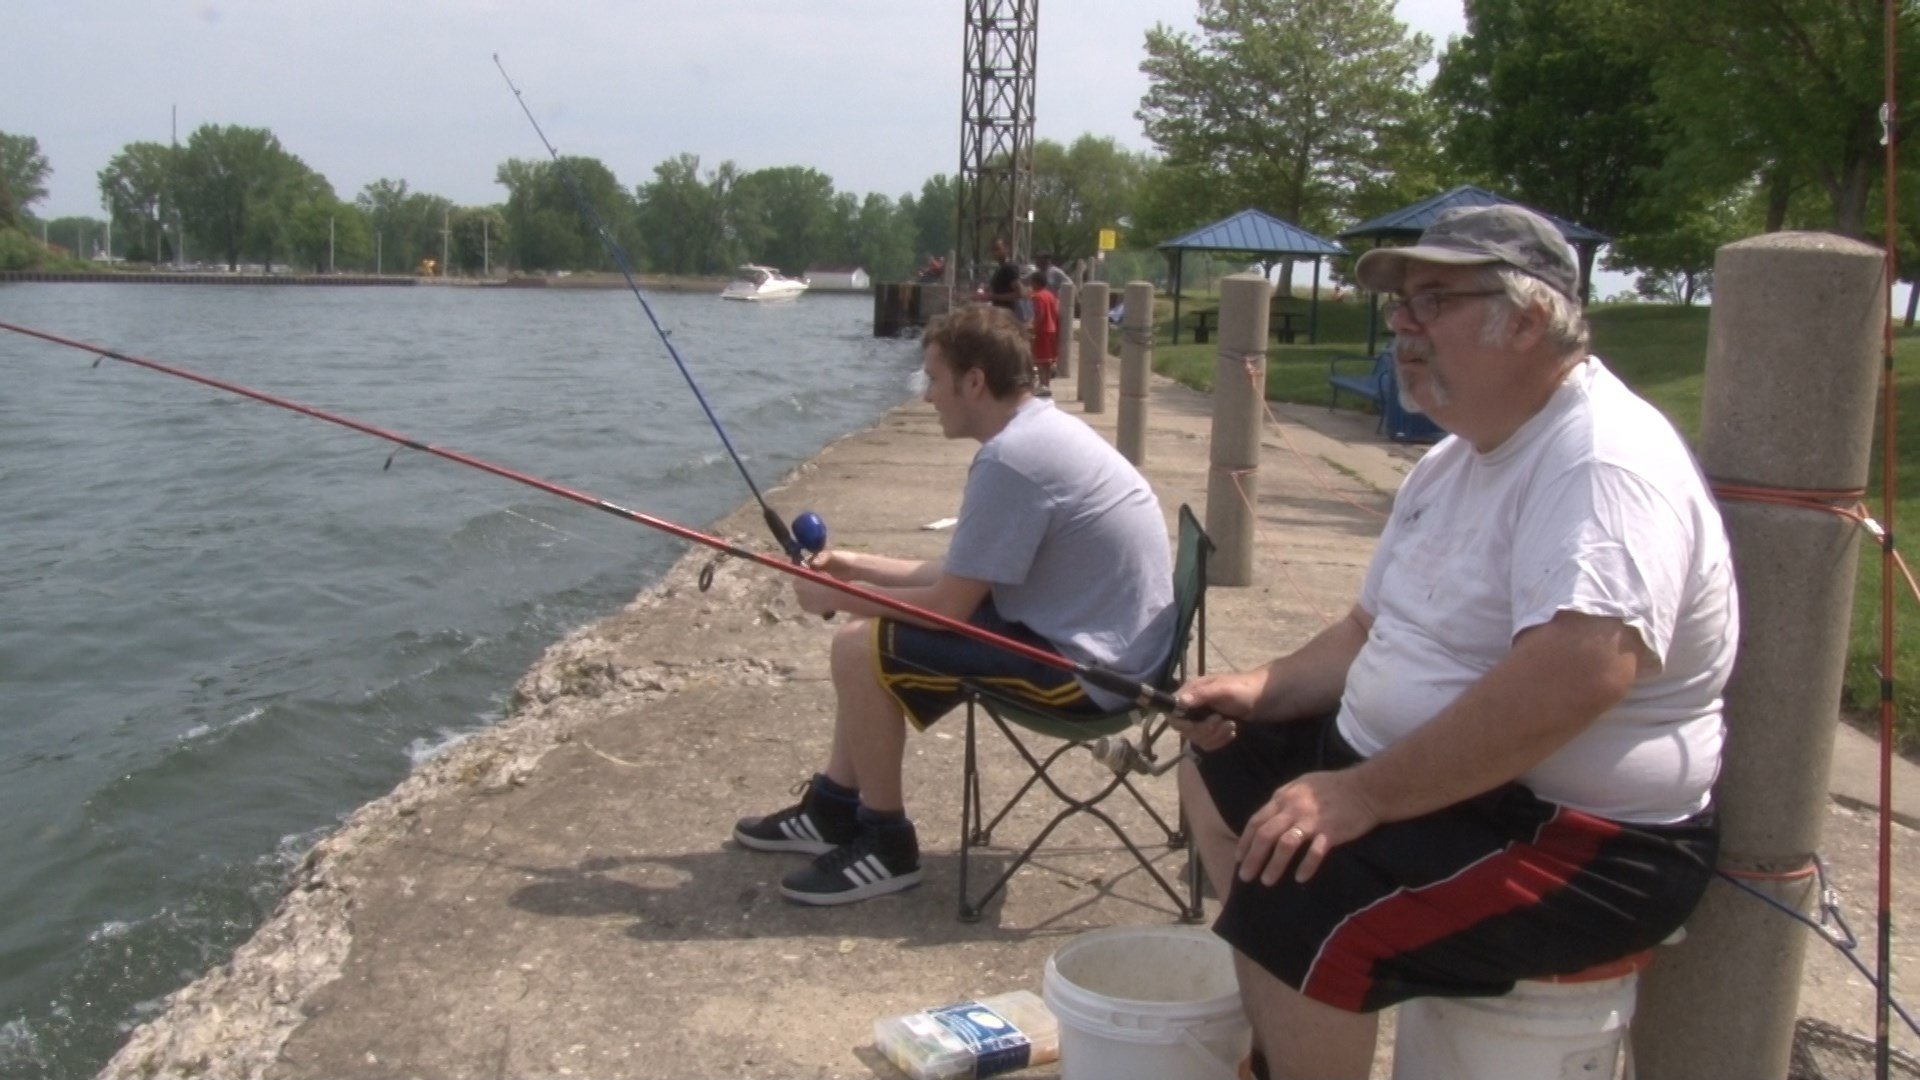 A day of free fishing in pennsylvania erie news now for Fishing in pennsylvania